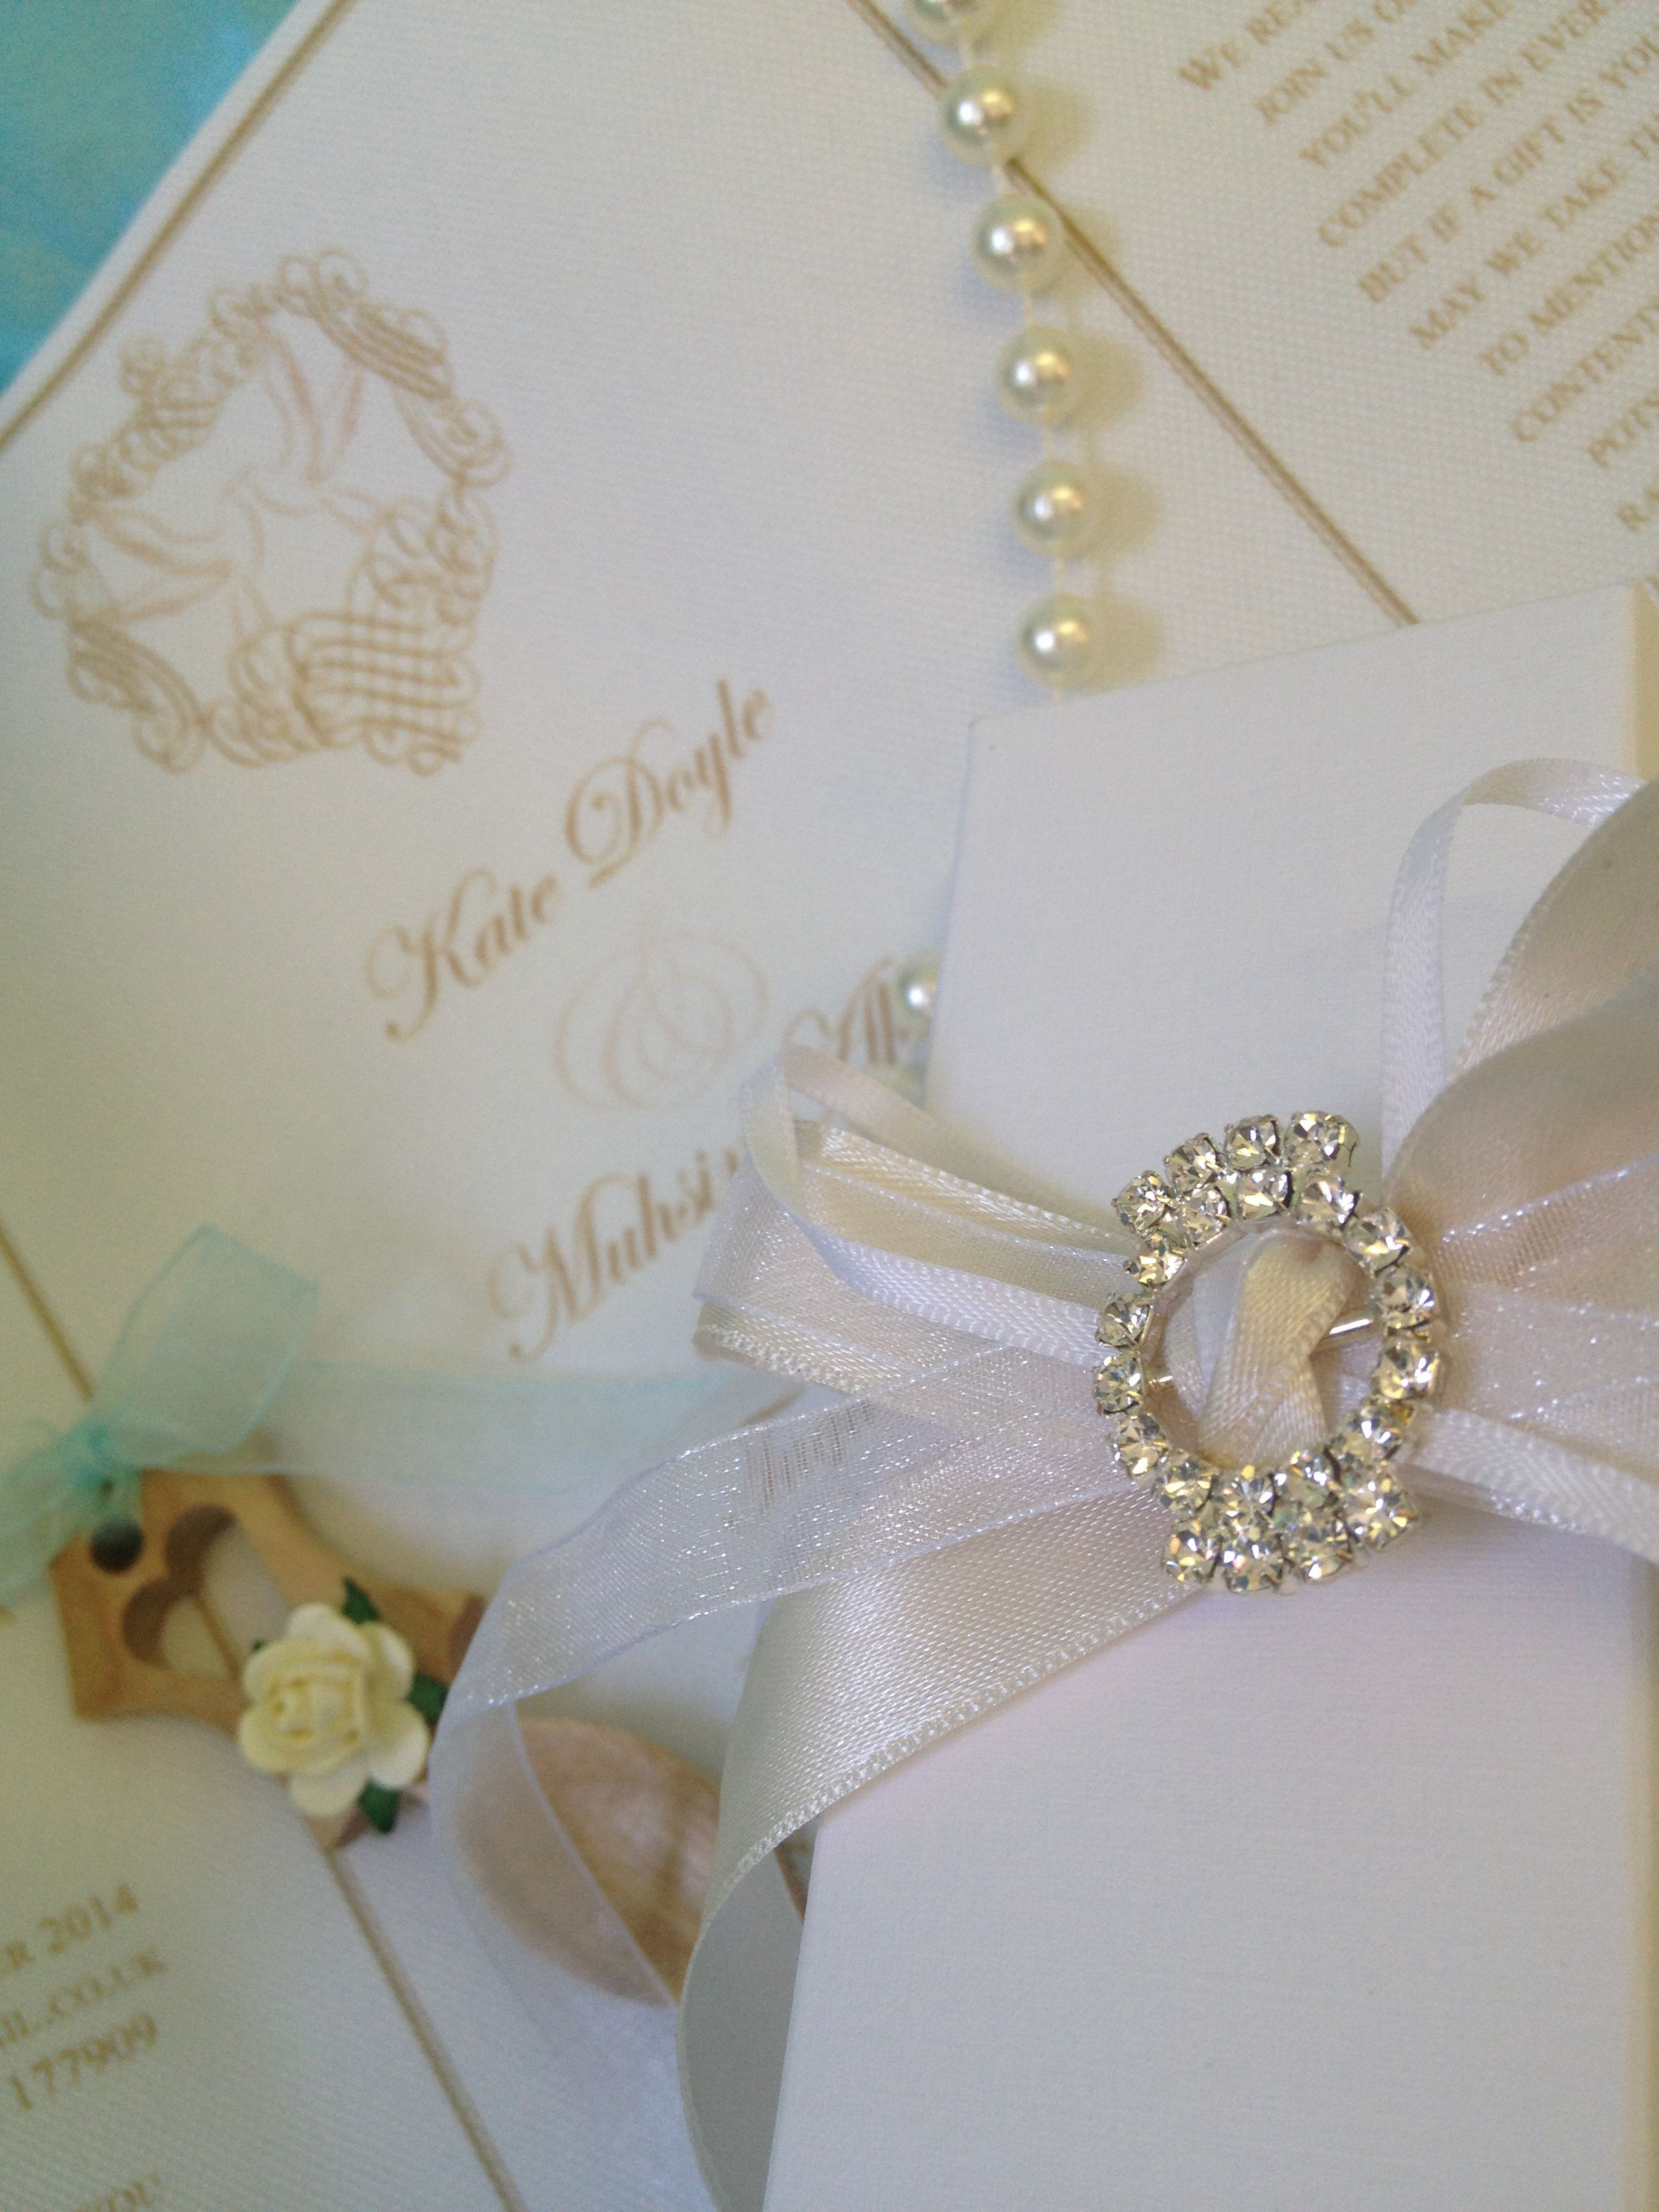 Scroll luxury vintage wedding invitation handmade by Perfect Day ...